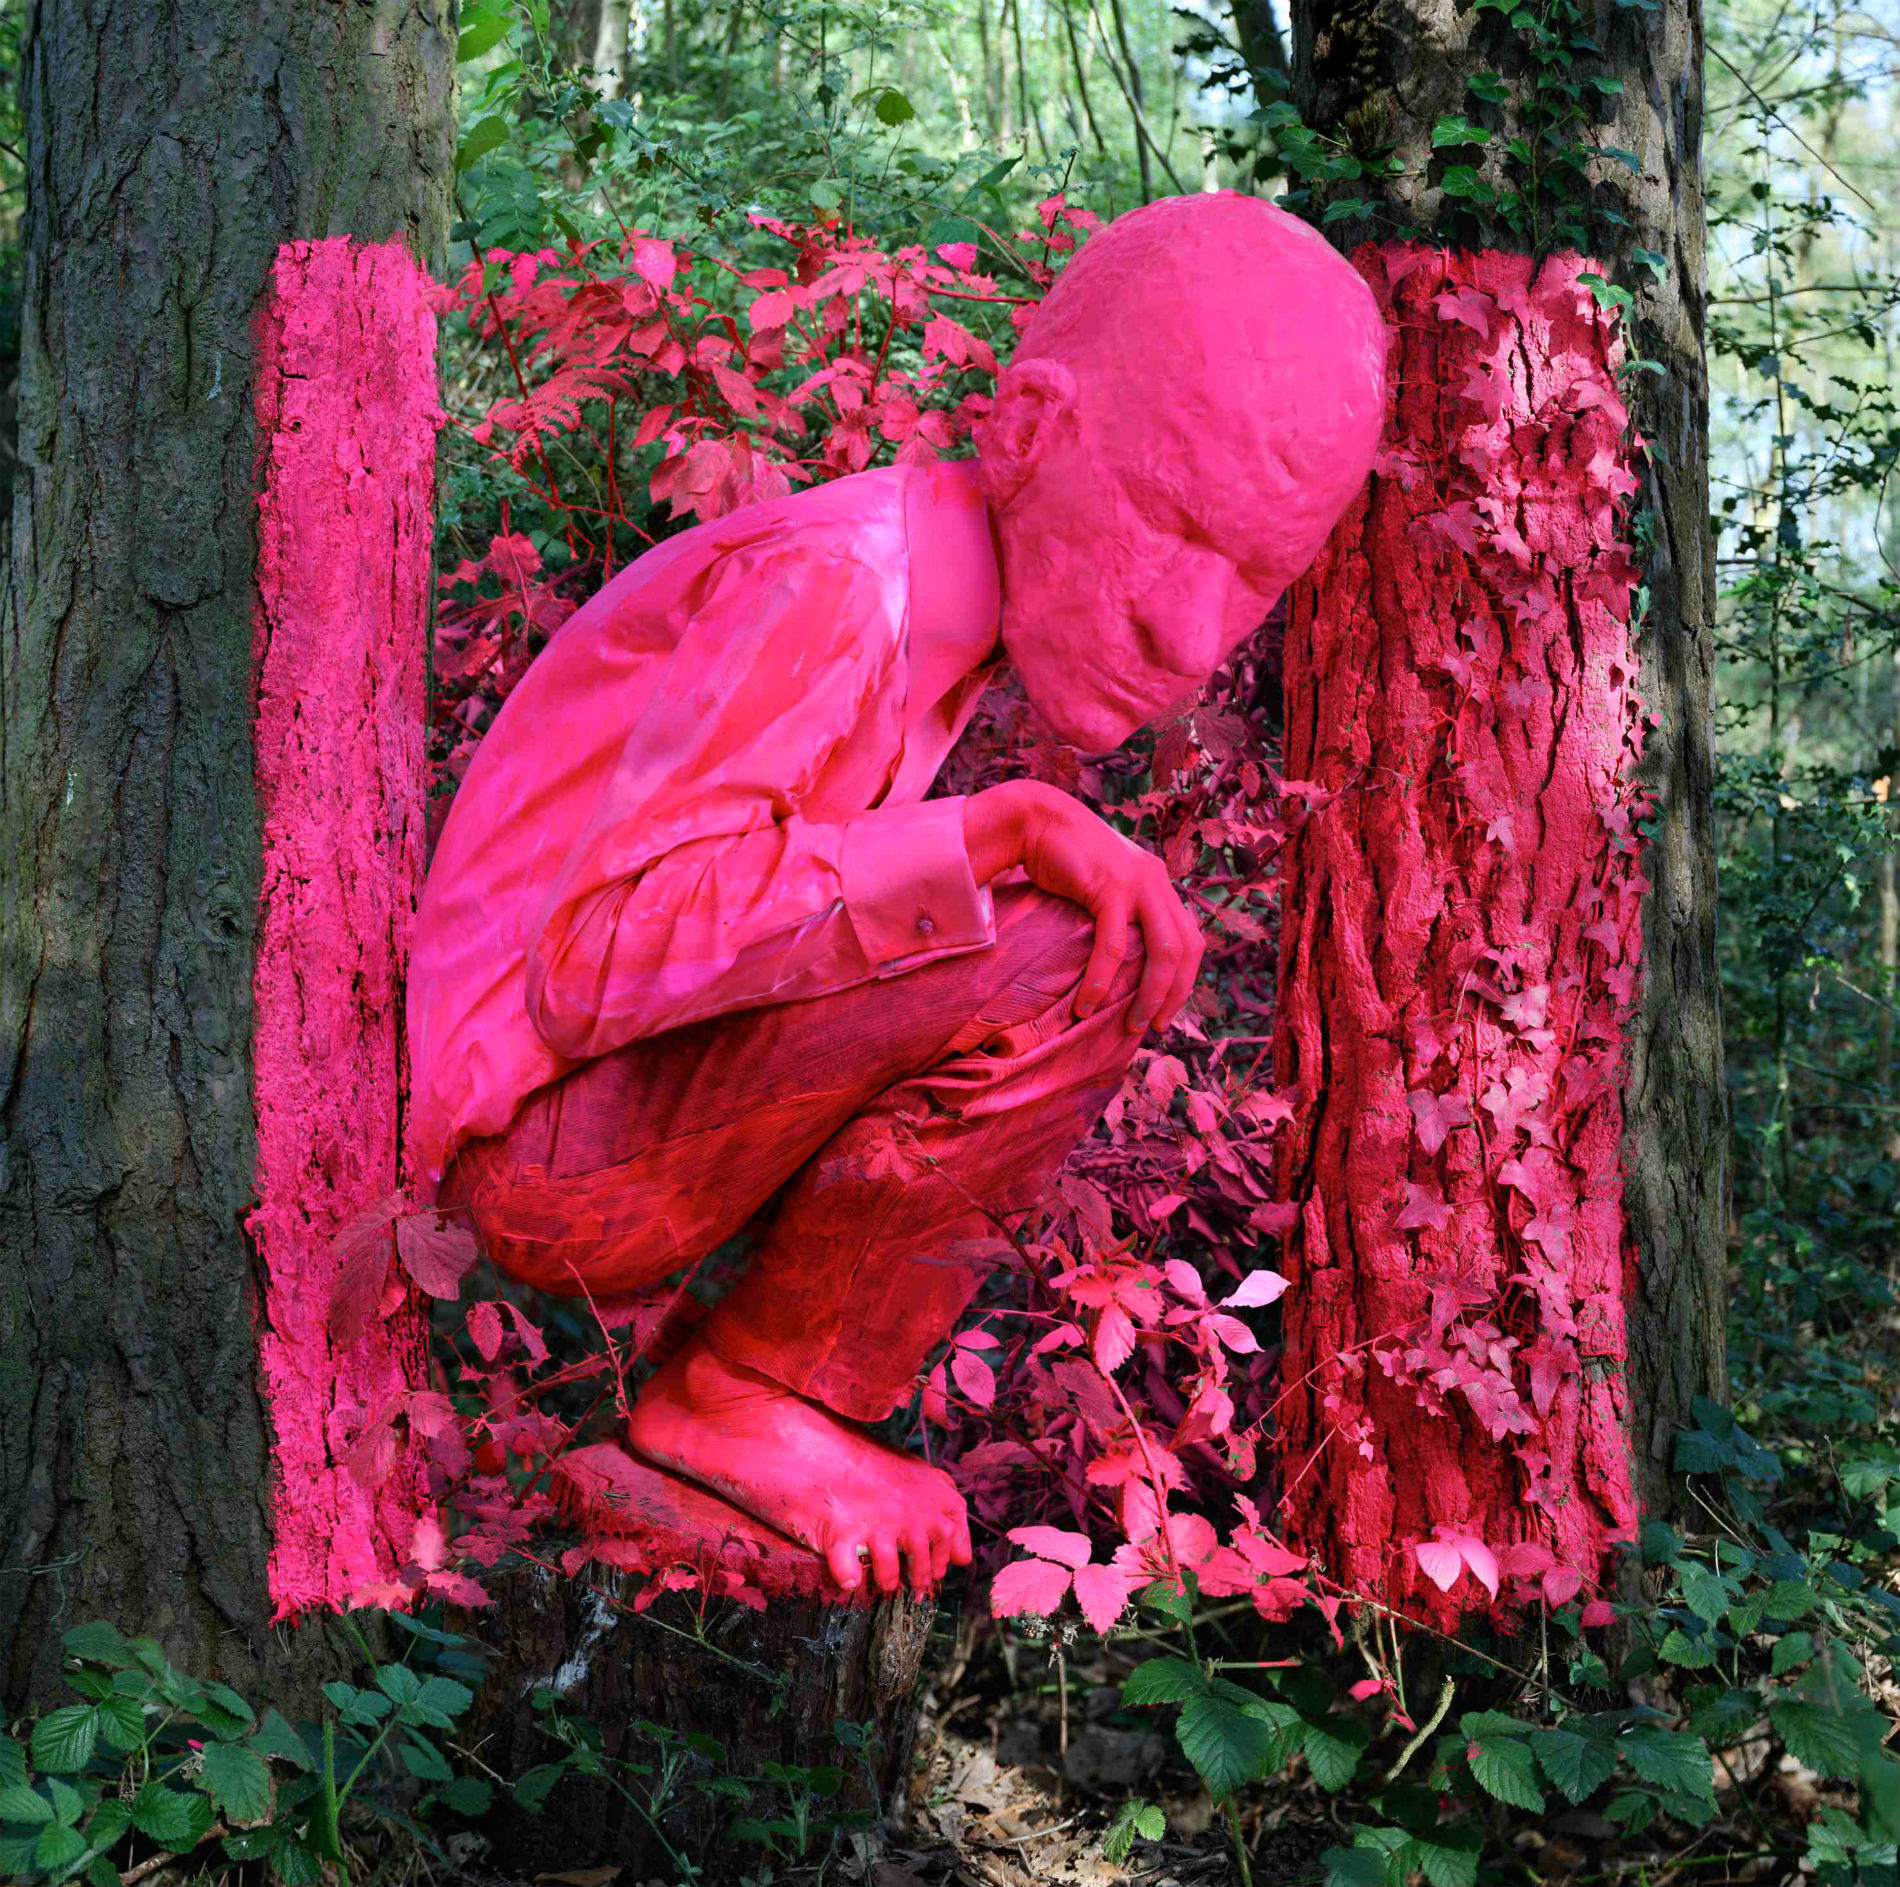 jonny briggs photographer abstract pink figure forest